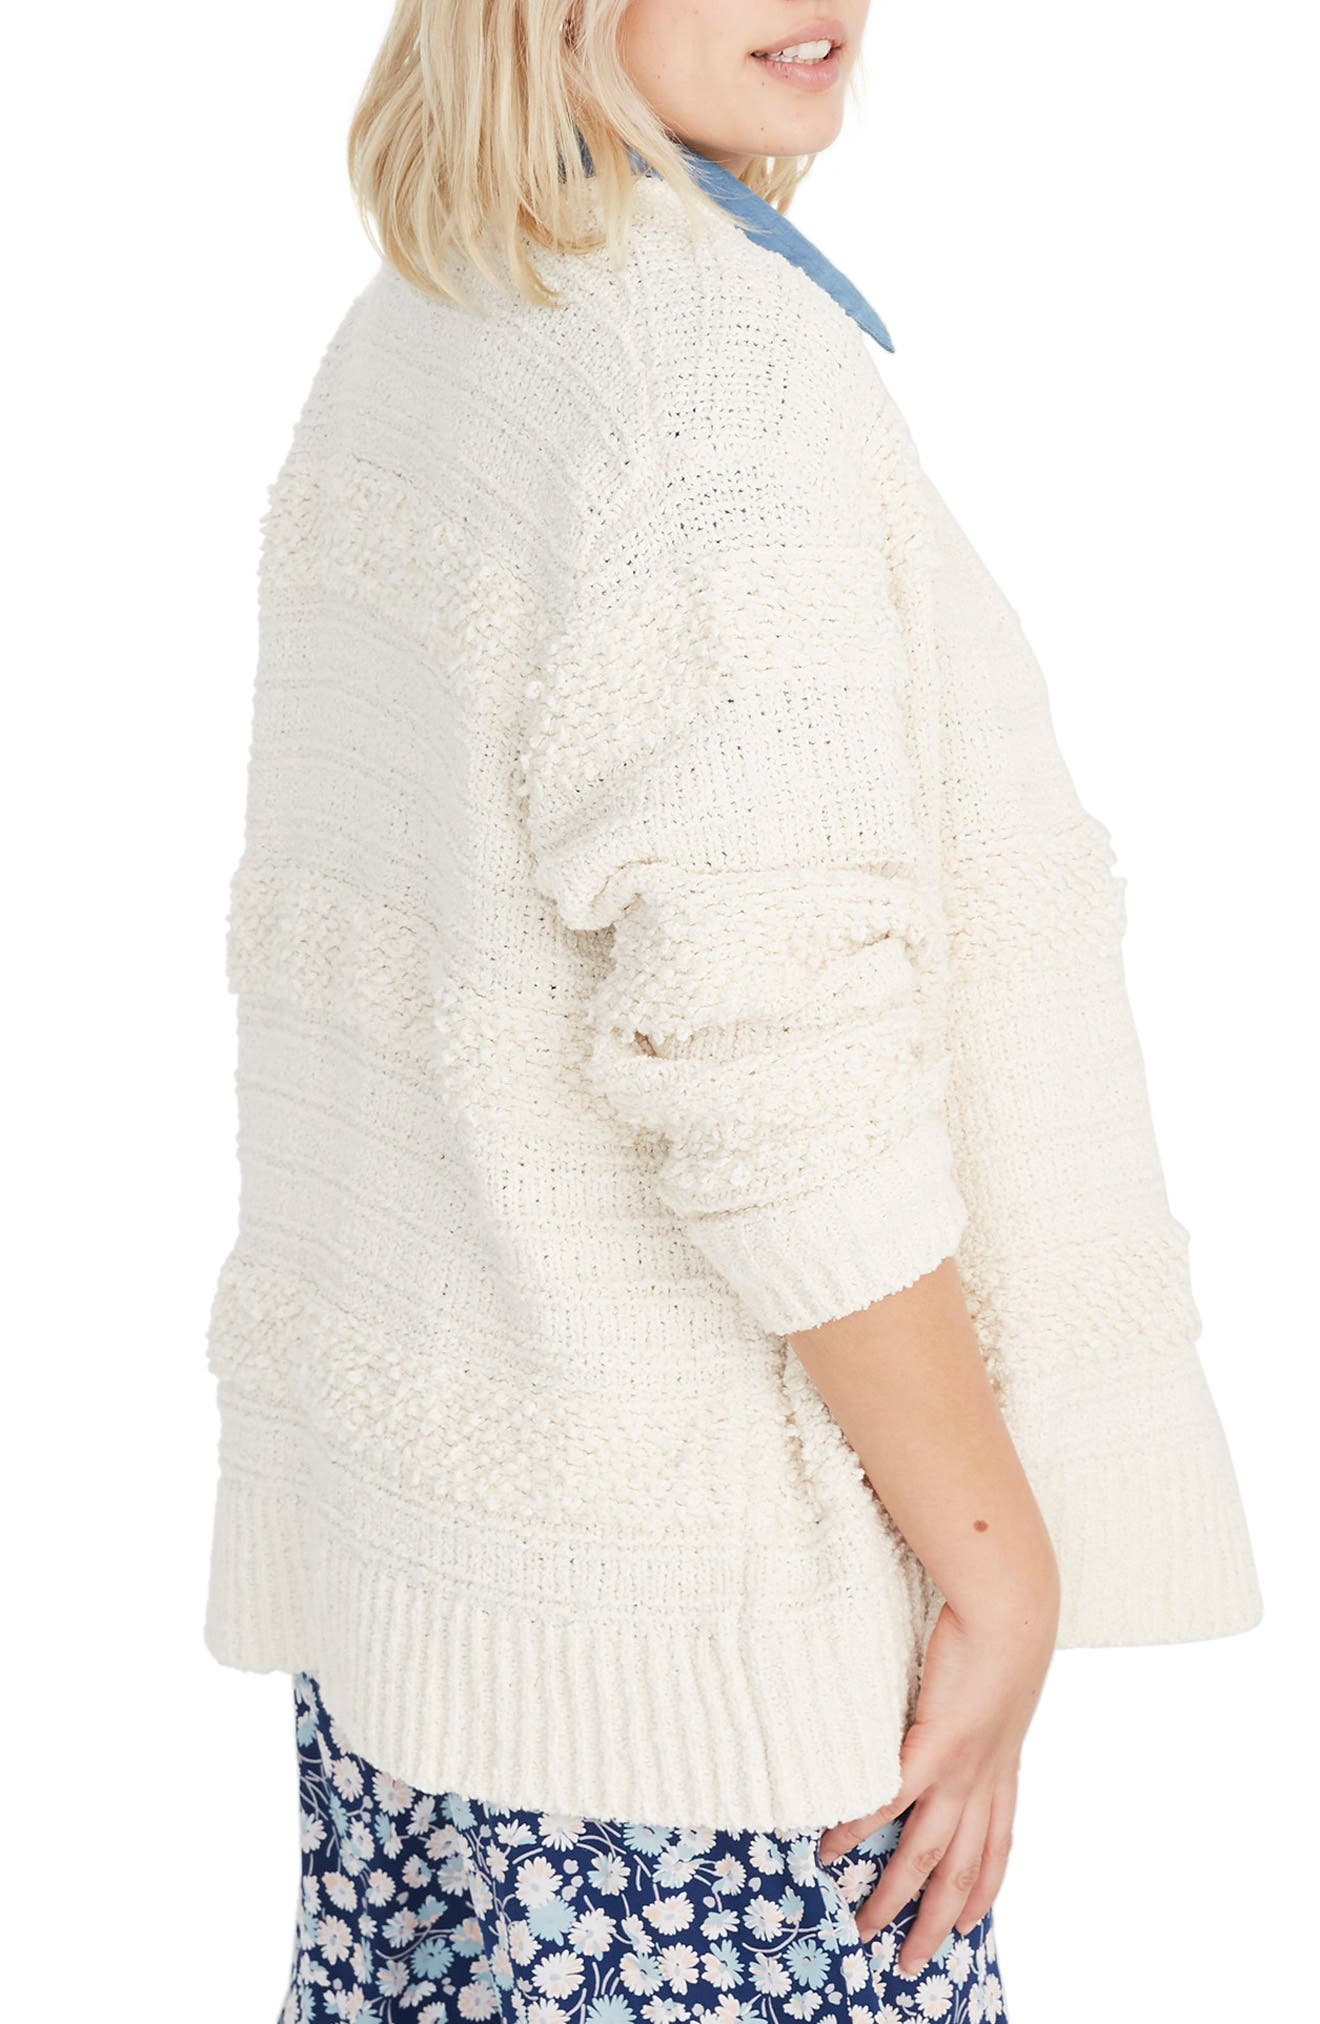 MADEWELL, Bronson Cardigan, Alternate thumbnail 7, color, 900